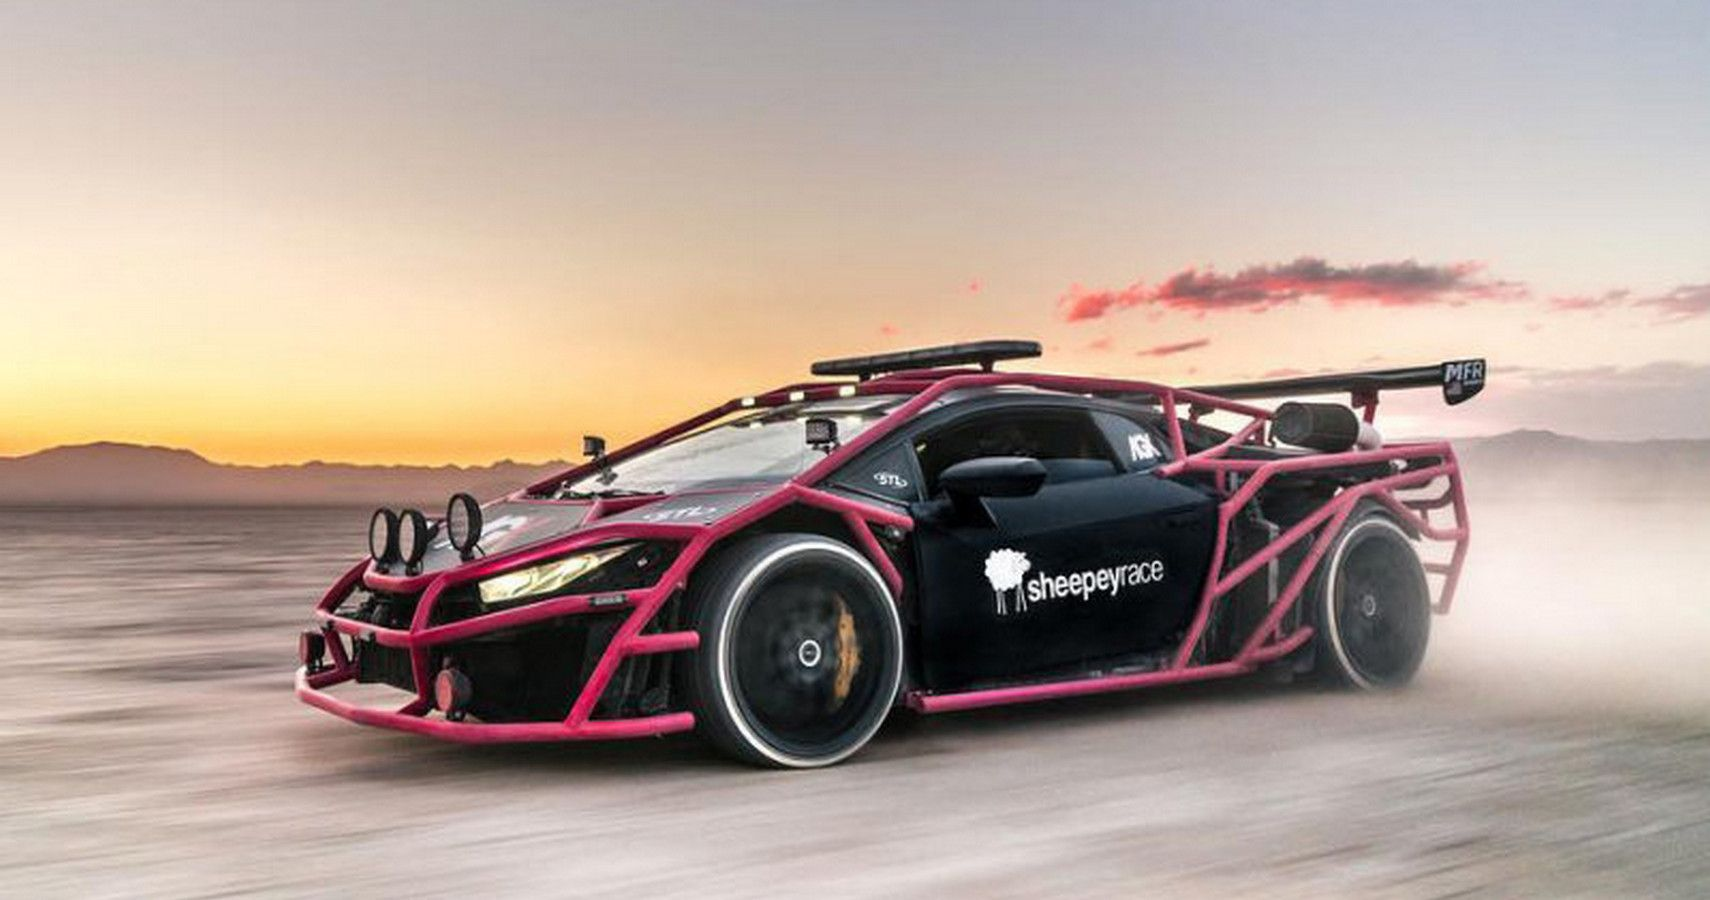 5 Lamborghinis That Were Modified To The Next Level (5 Factory Lambos That Are Even Wilder)